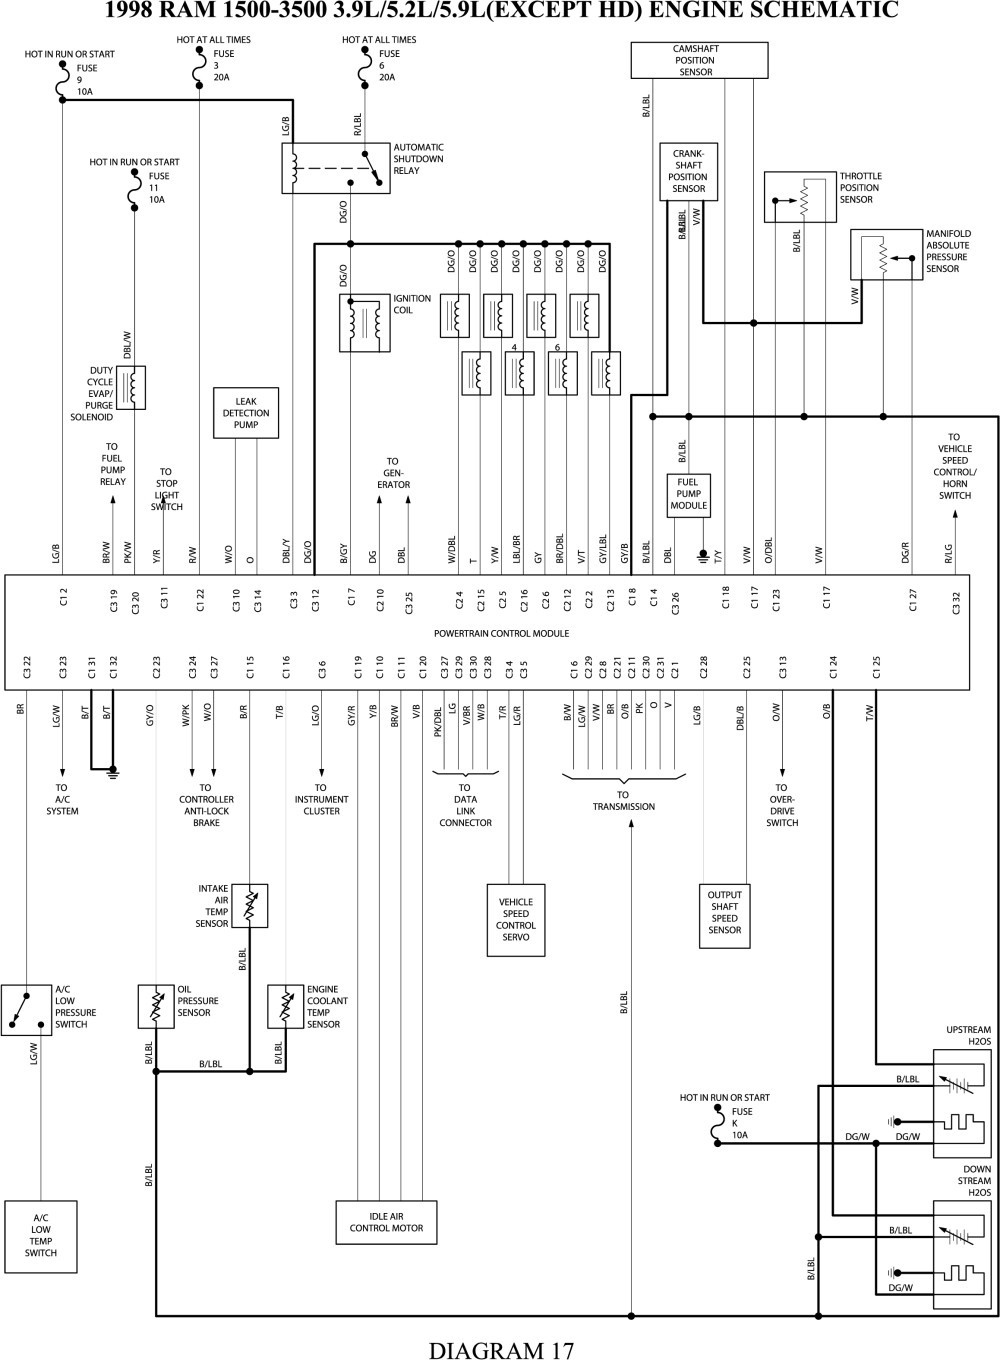 2005 dodge ram transmission wiring diagram block and schematic rh lazysupply co 2005 dodge ram 1500 pcm wiring diagram 2005 dodge ram 1500 wiring diagram pdf